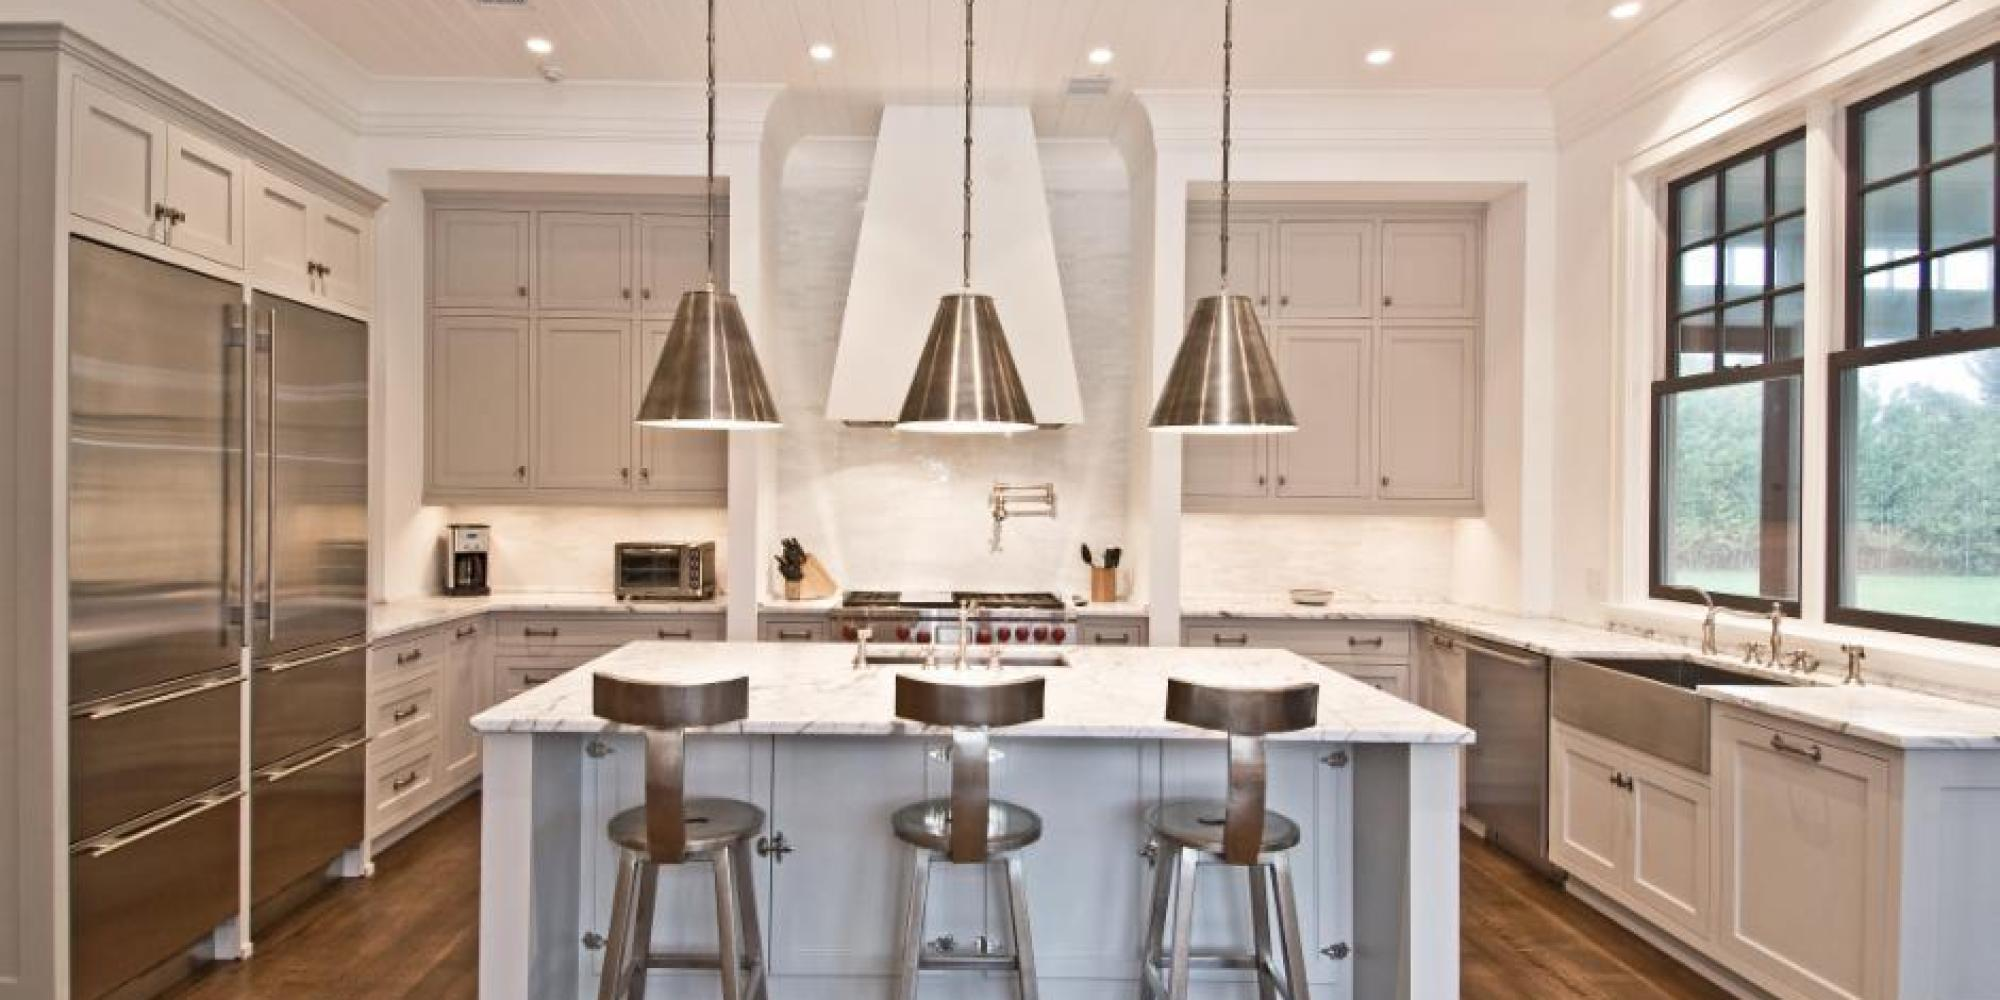 Kitchen Paint Colors With White Cabinets The Best Paint Colors For Every Type Of Kitchen  Huffpost